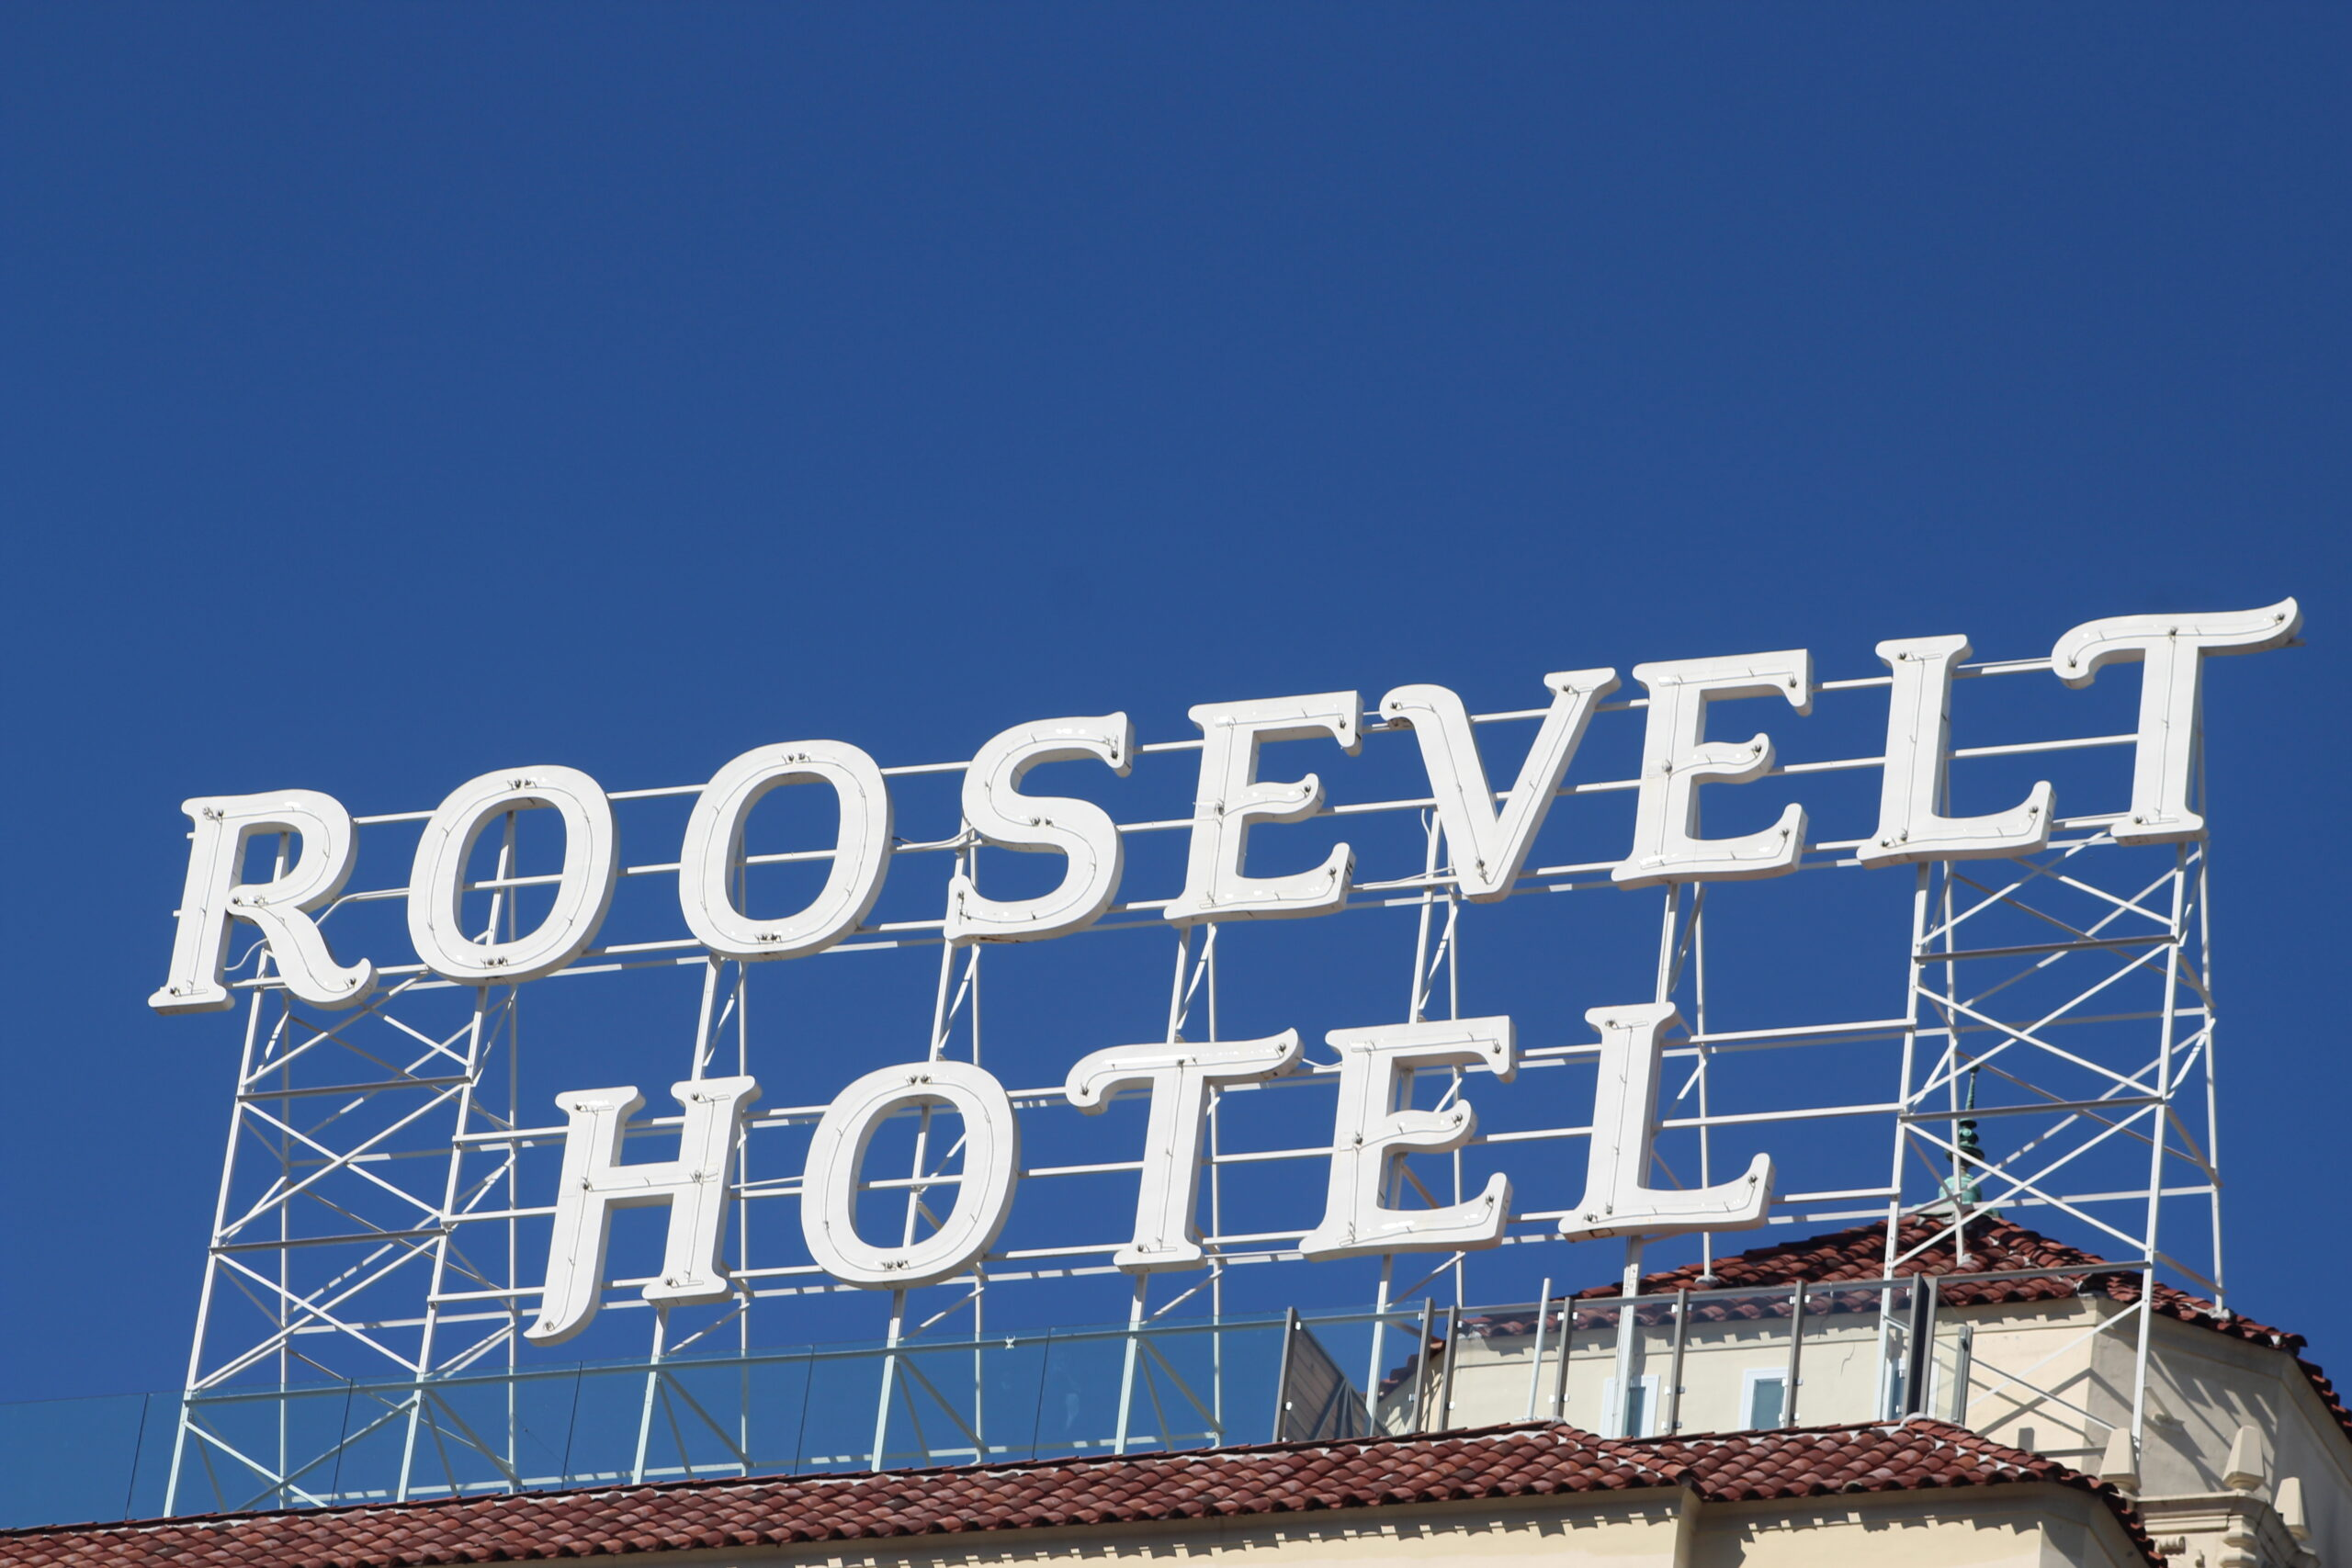 Hollywood Roosevelt Hotel. Photo: Yevette Renee